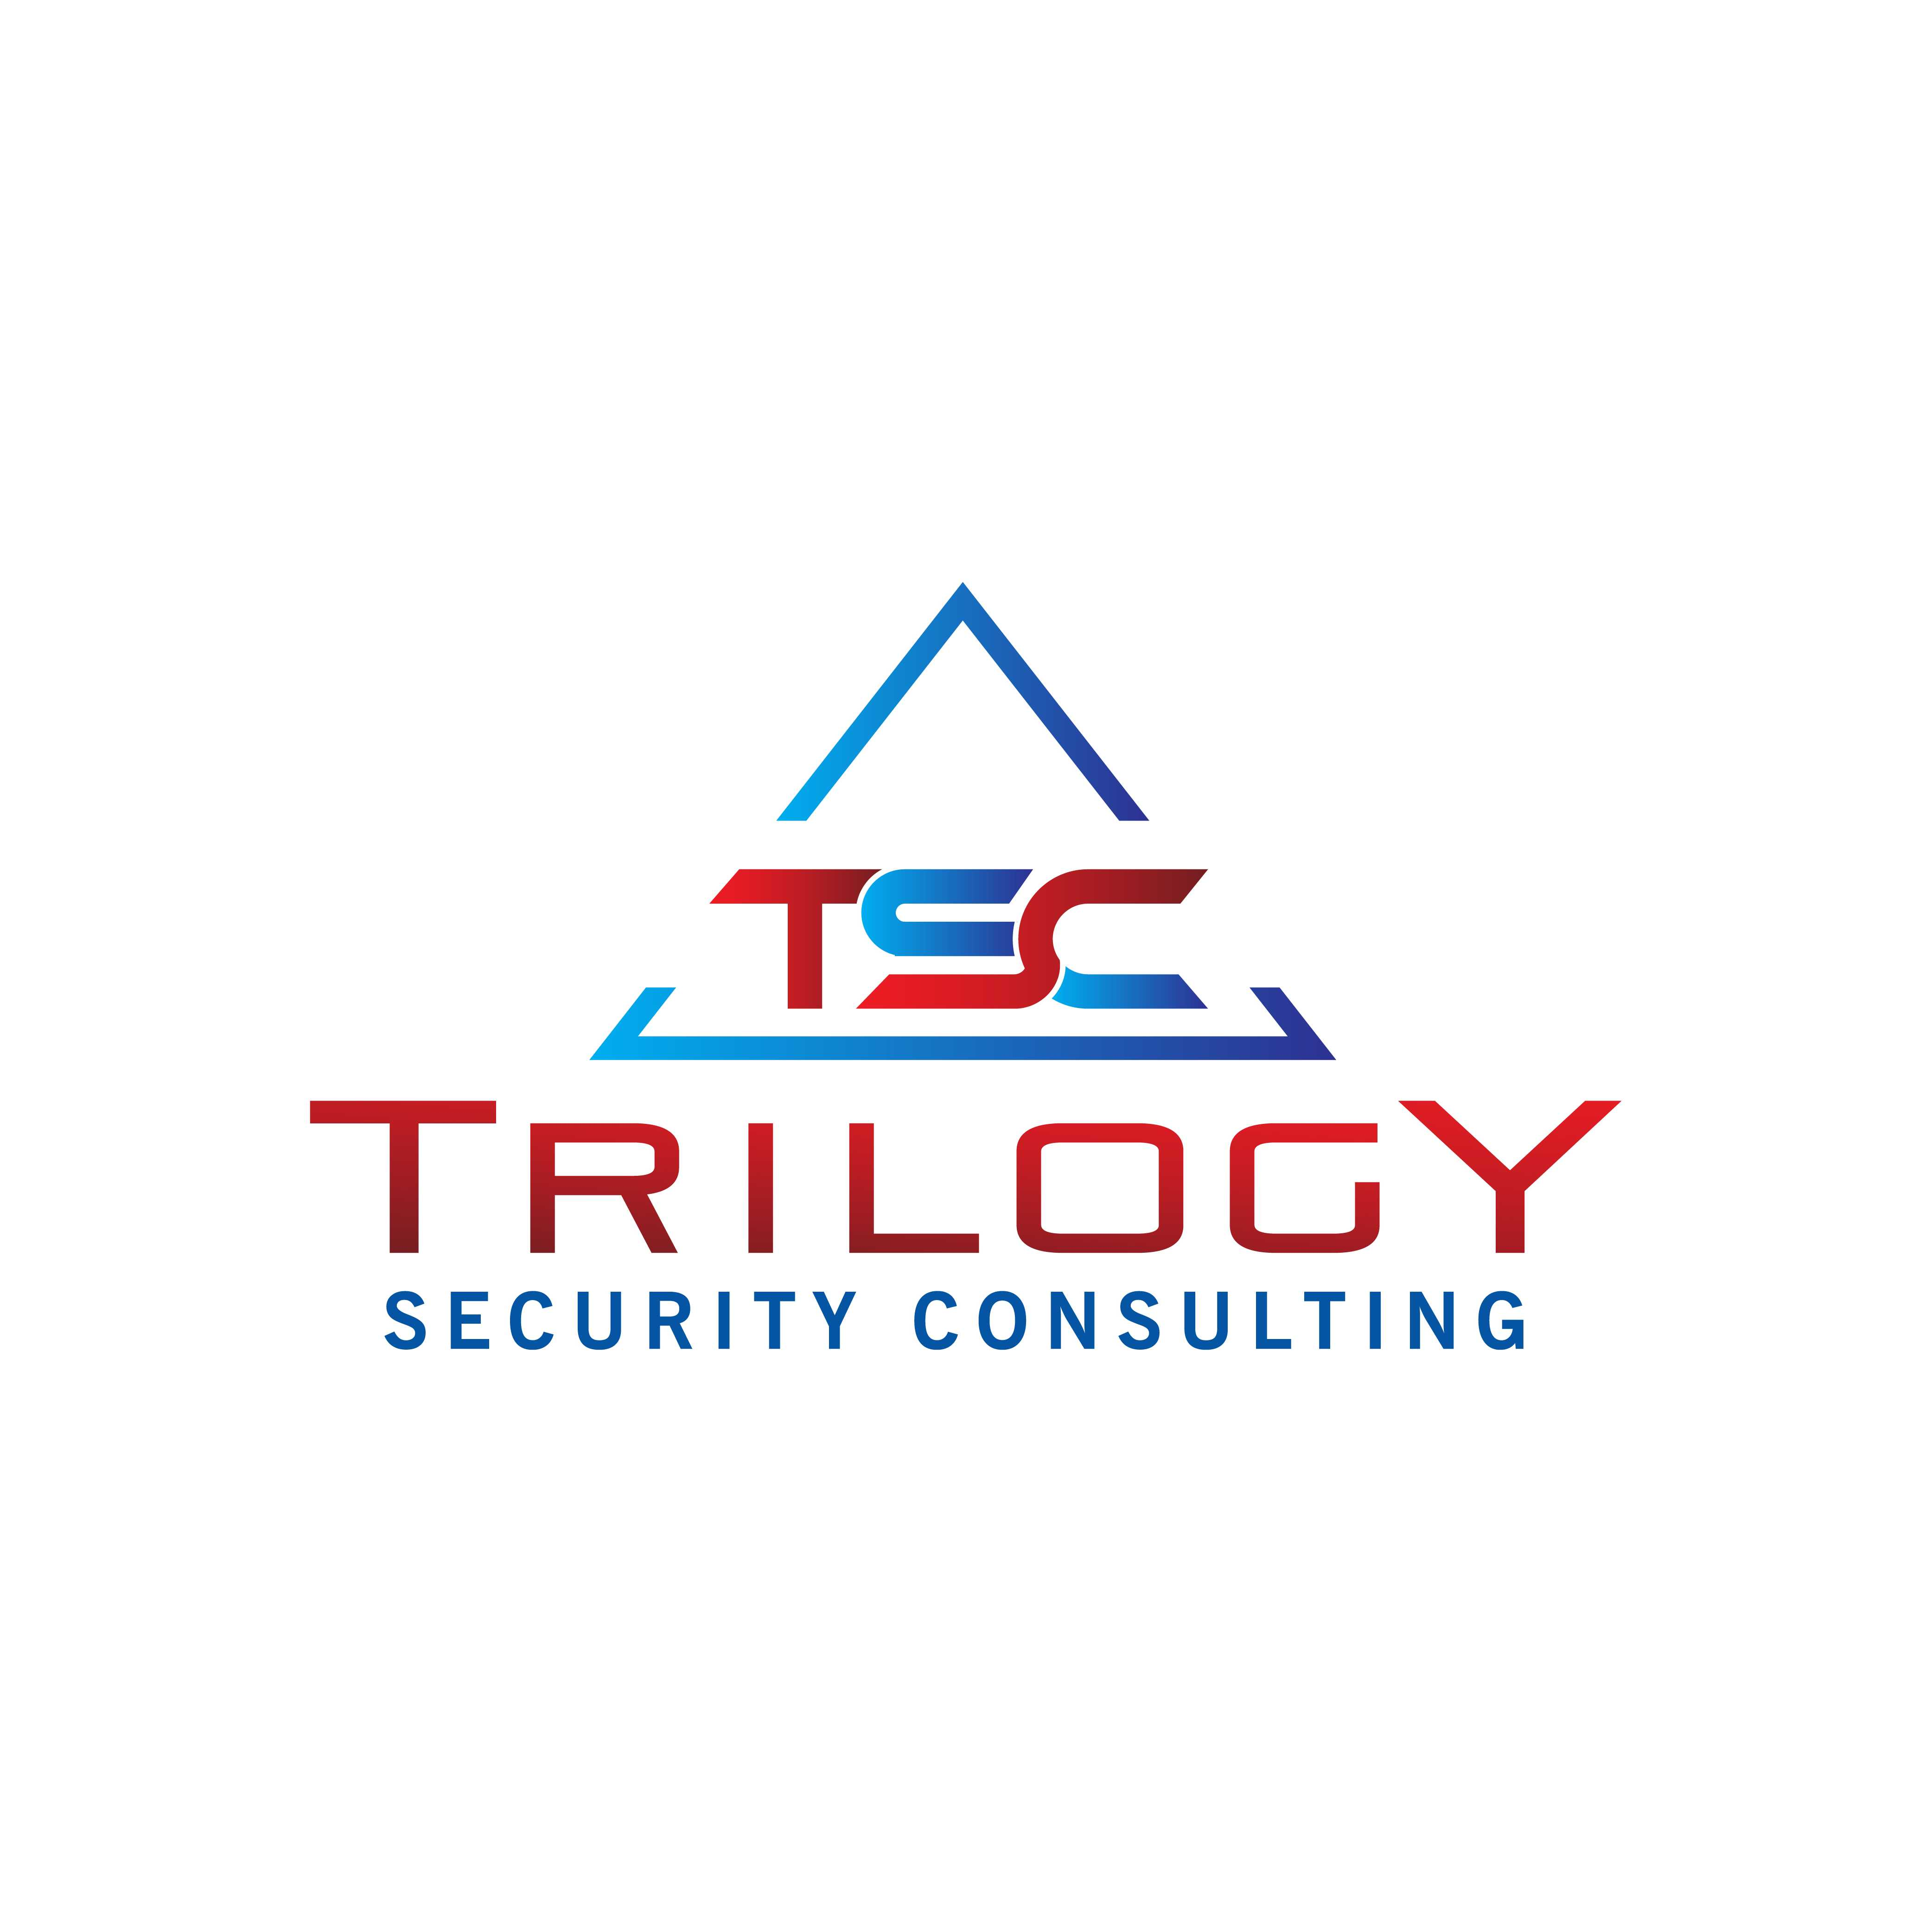 Trilogy Security Consulting, LLC